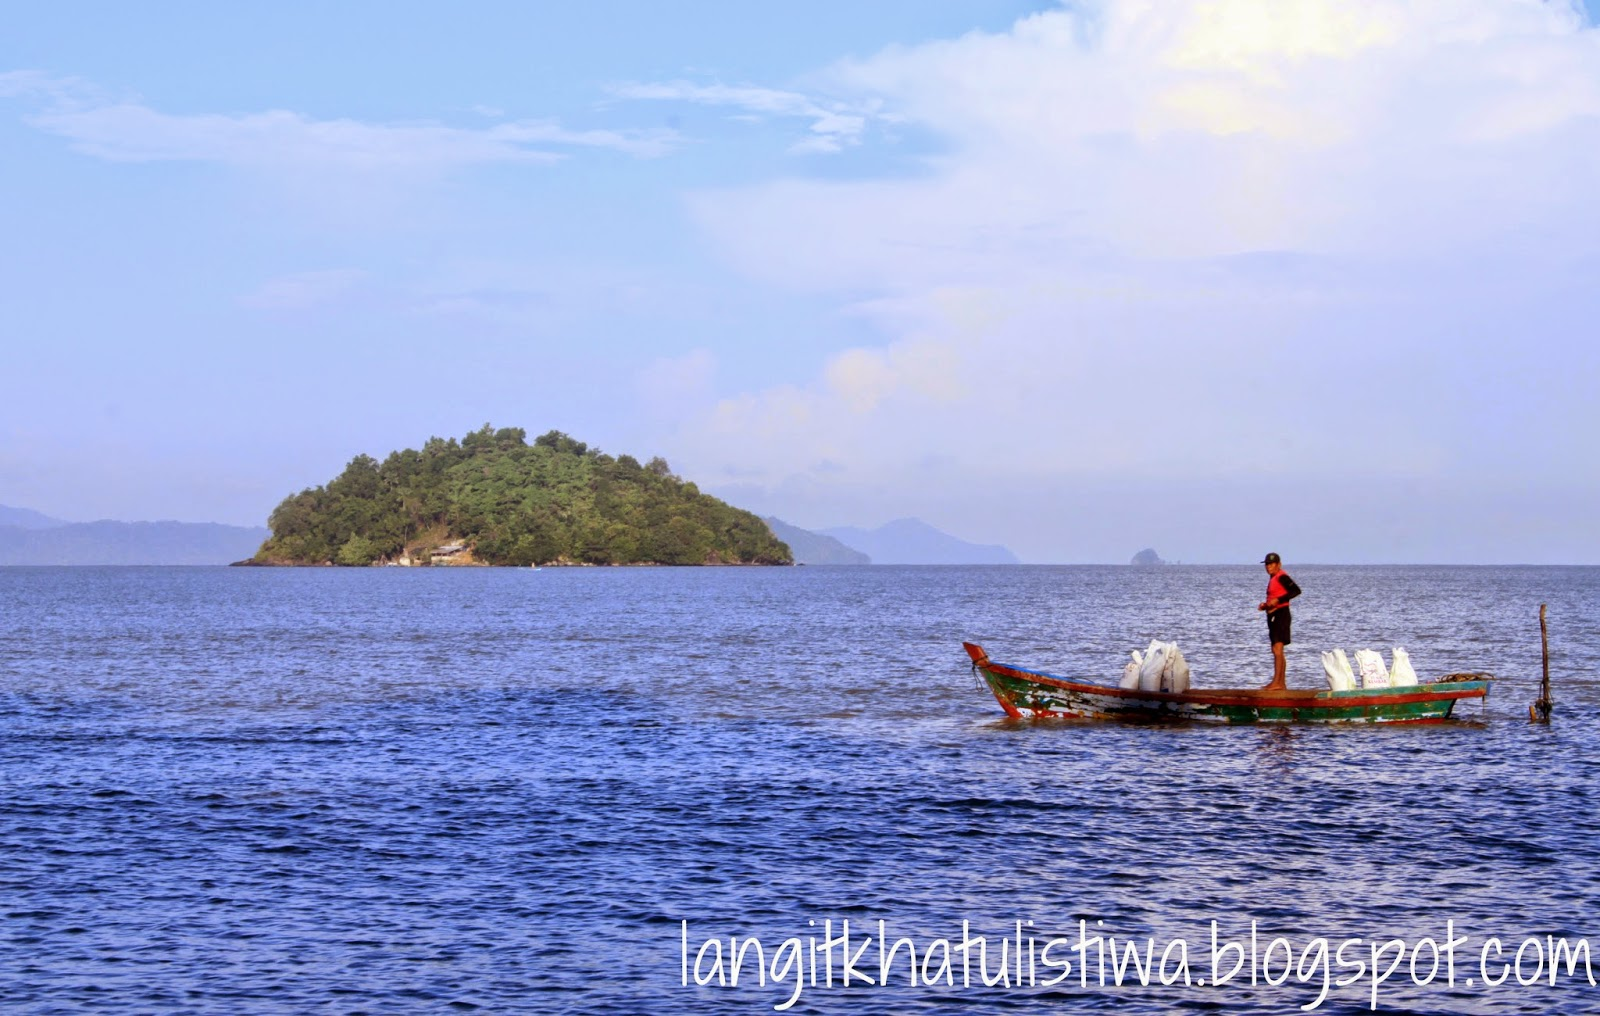 Fisherman of Gosong Beach